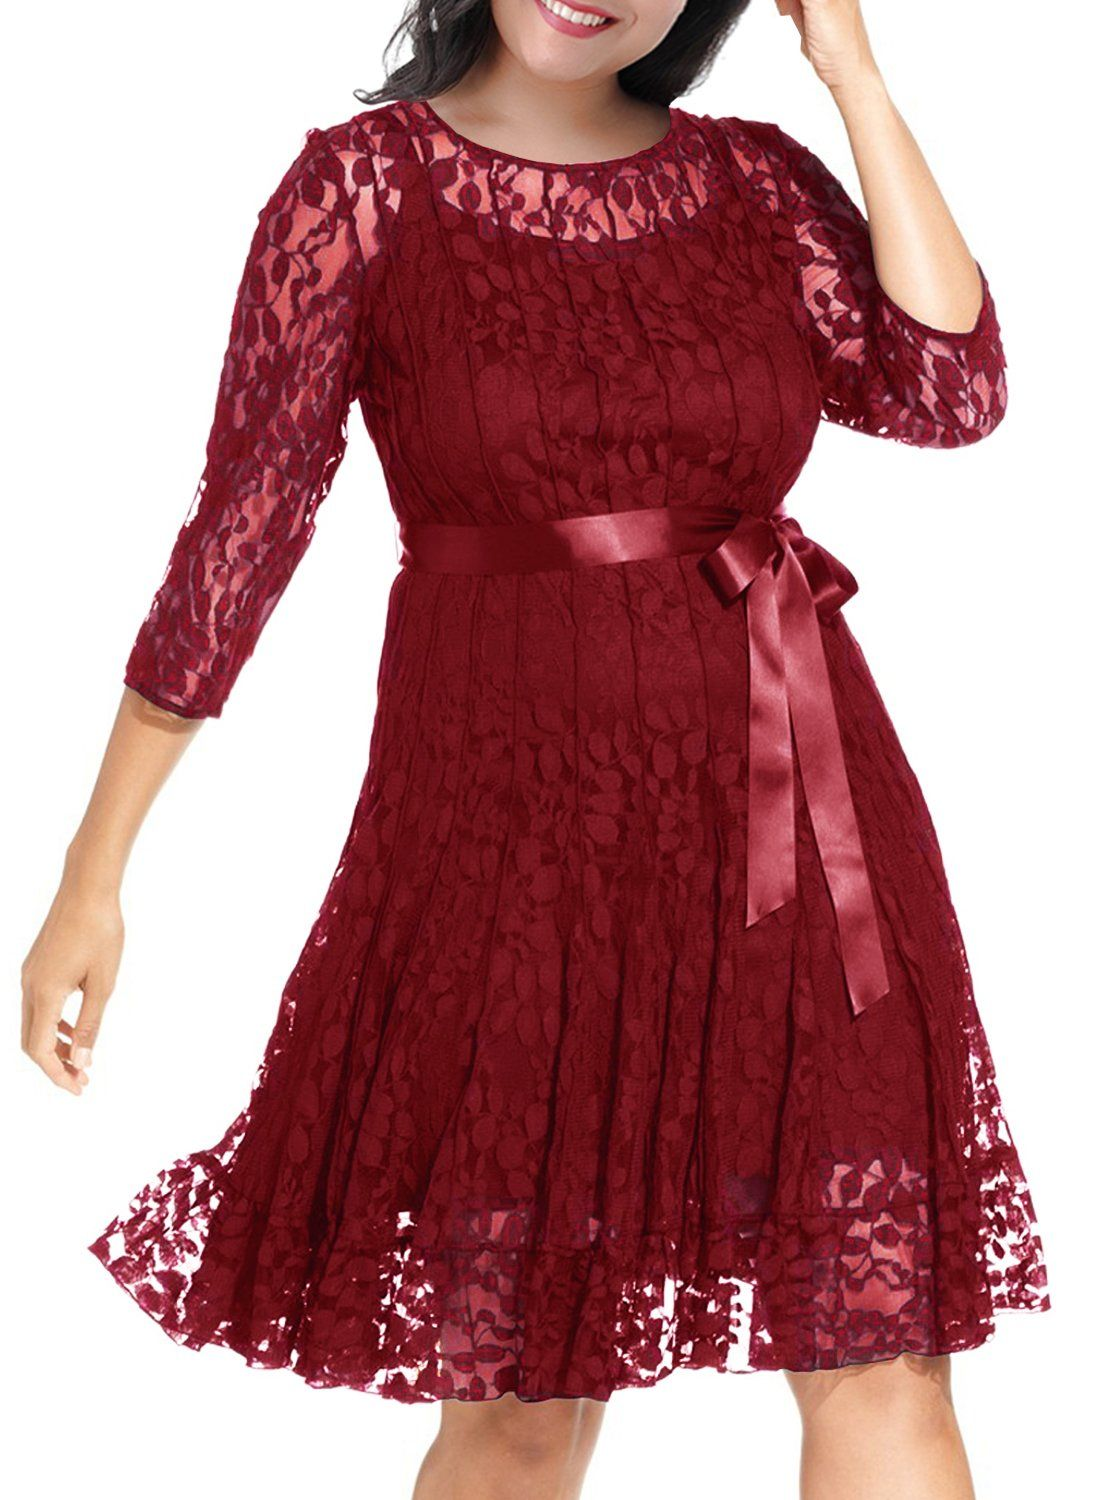 Nemidor Womens Illusion Floral Lace 3 4 Sleeves Plus Size Cocktail Dress 20w Wine Continue To Th Lace Swing Dress Plus Size Cocktail Dresses Midi Swing Dress [ 1500 x 1114 Pixel ]